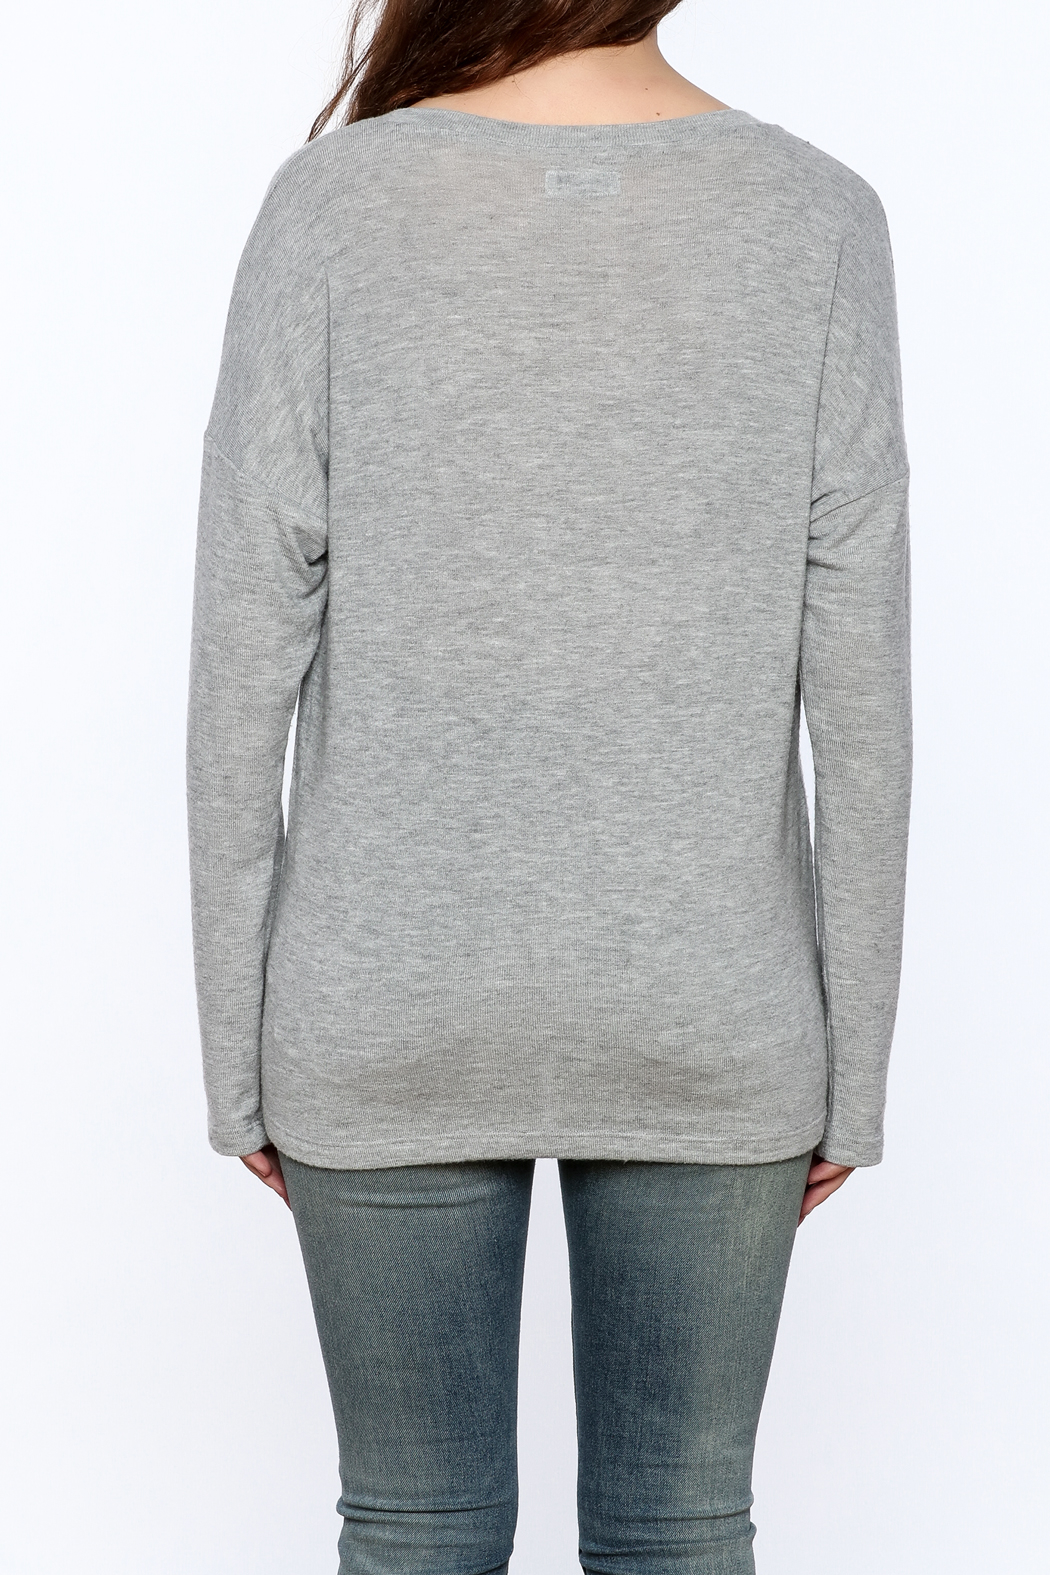 Lauren Moshi Hacci V-neck Sweatshirt - Back Cropped Image